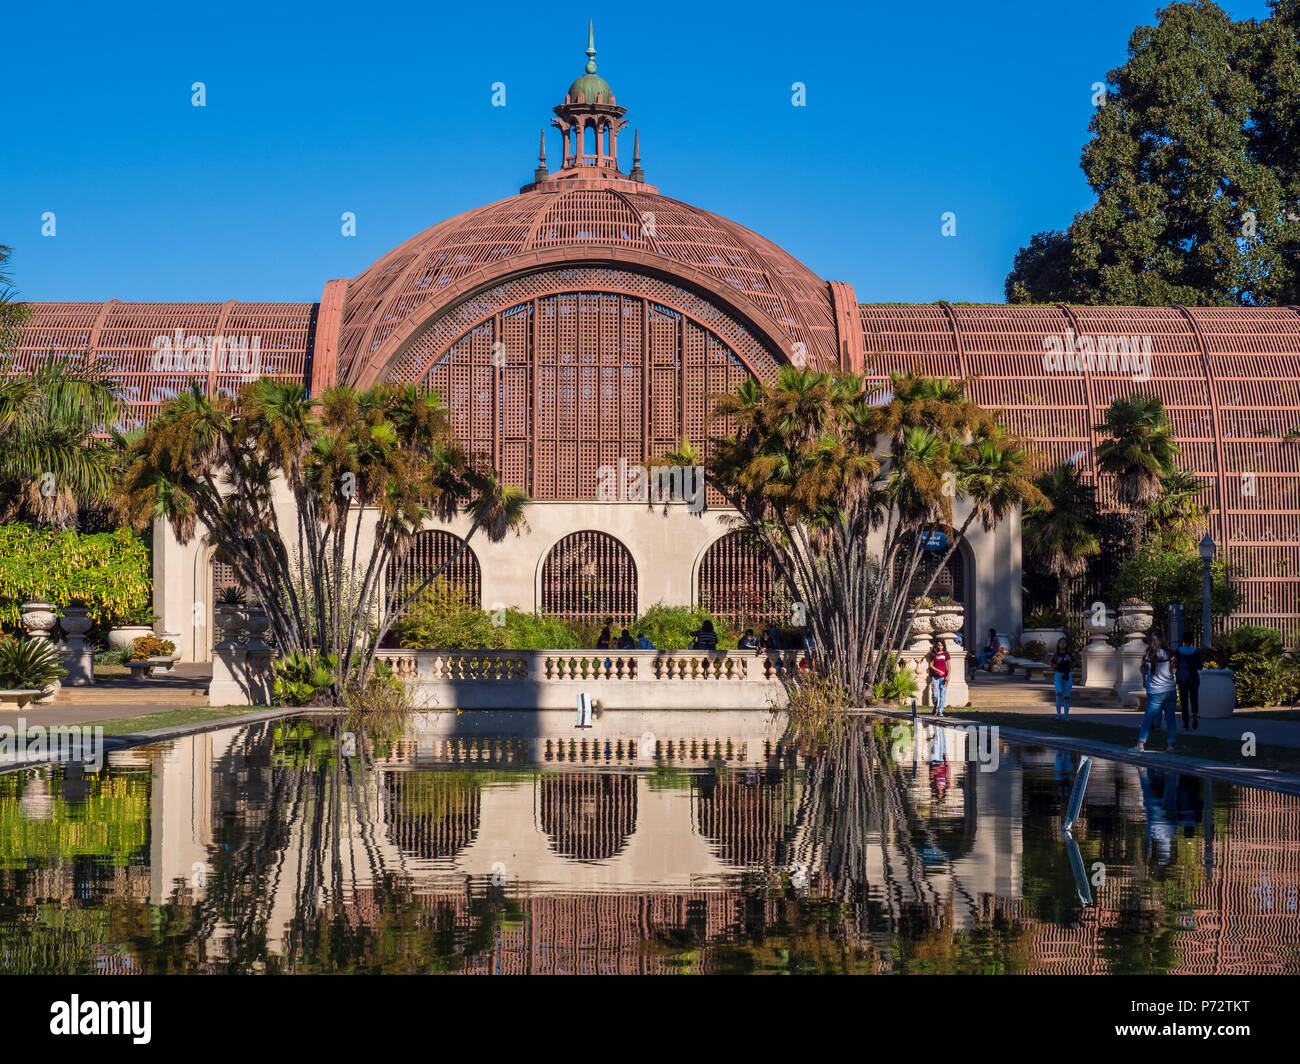 Exposition Park Stock Photos & Exposition Park Stock Images - Alamy